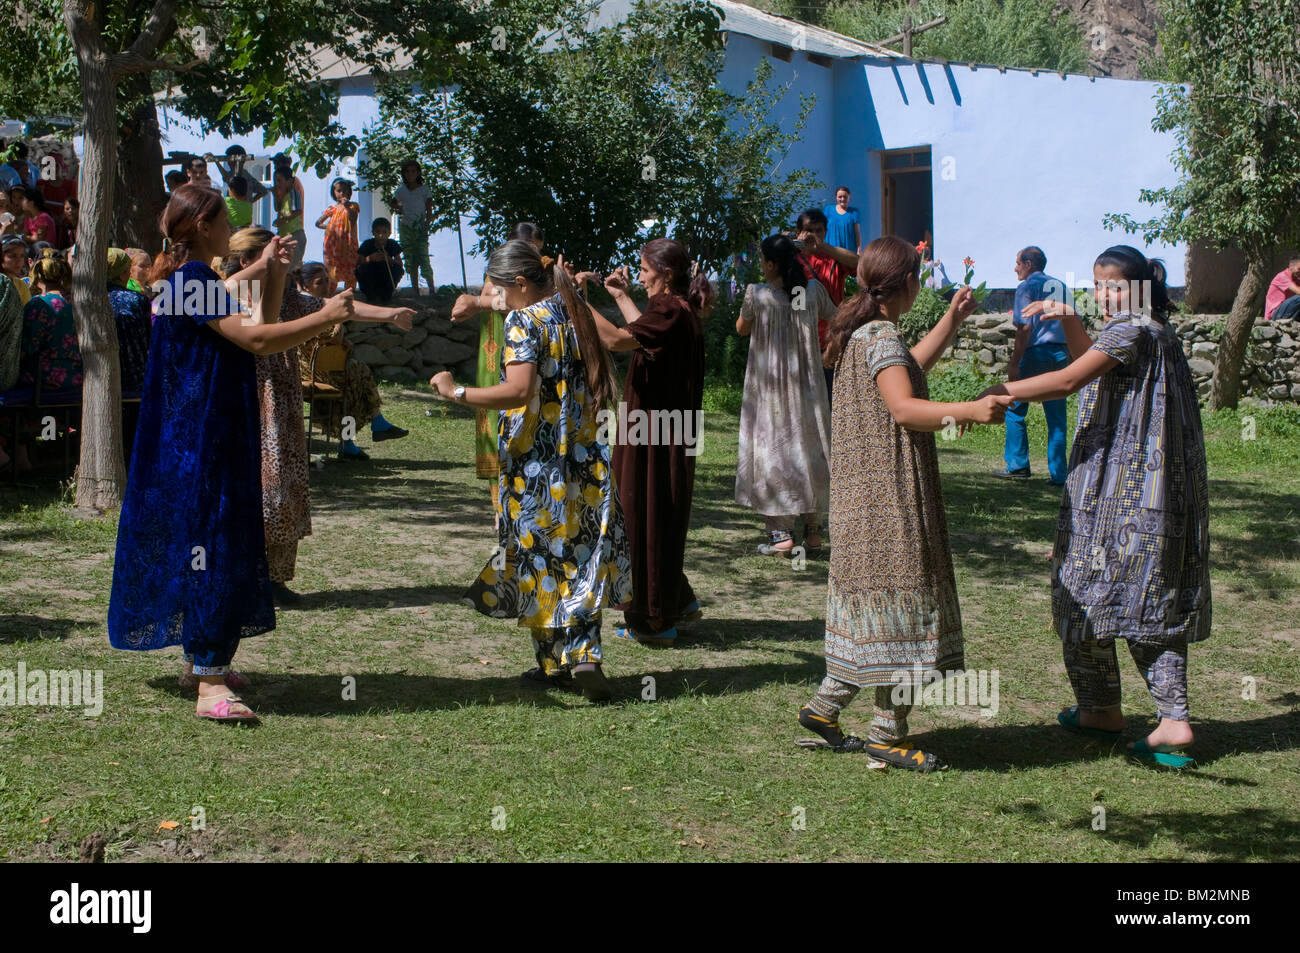 Dancing guests at wedding at Pamiris, Bartang Valley, Tajikistan - Stock Image